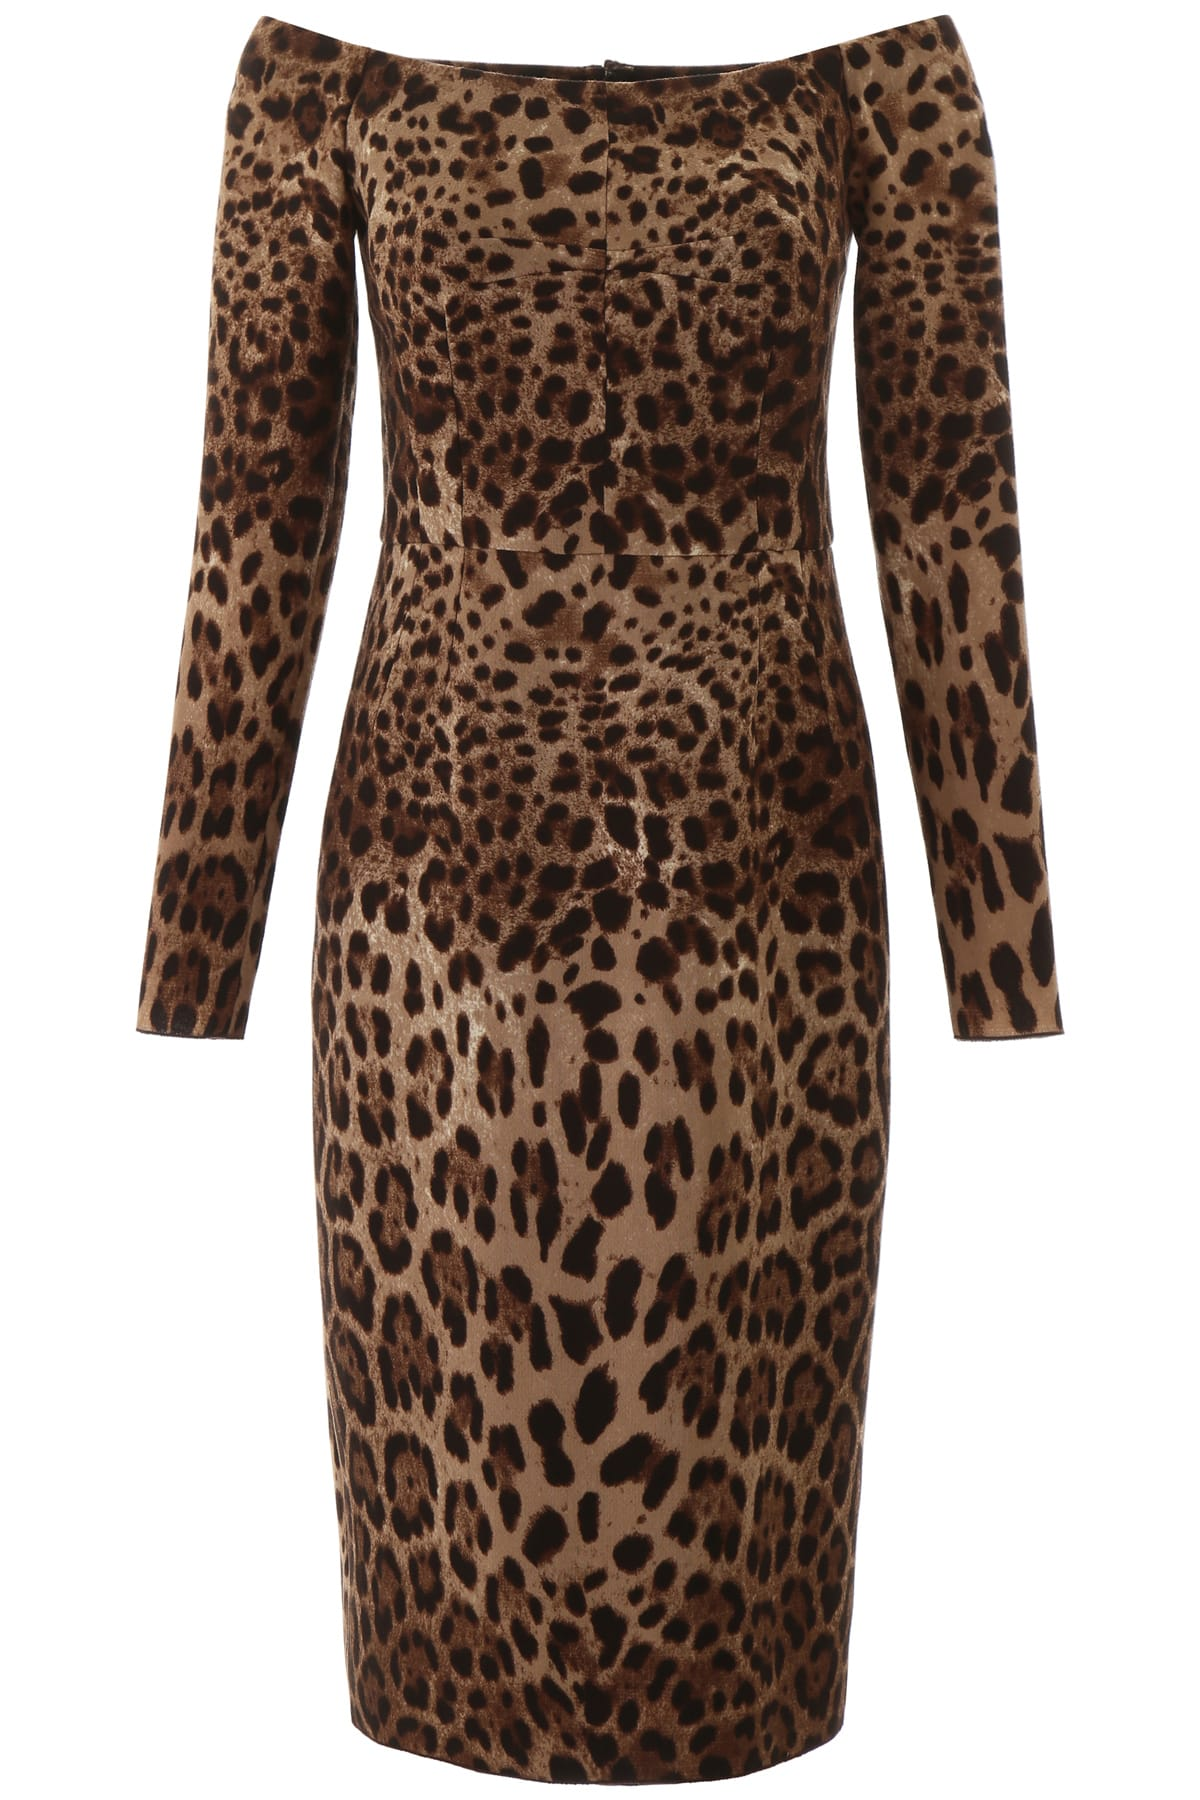 Buy Dolce & Gabbana Animalier Midi Dress online, shop Dolce & Gabbana with free shipping